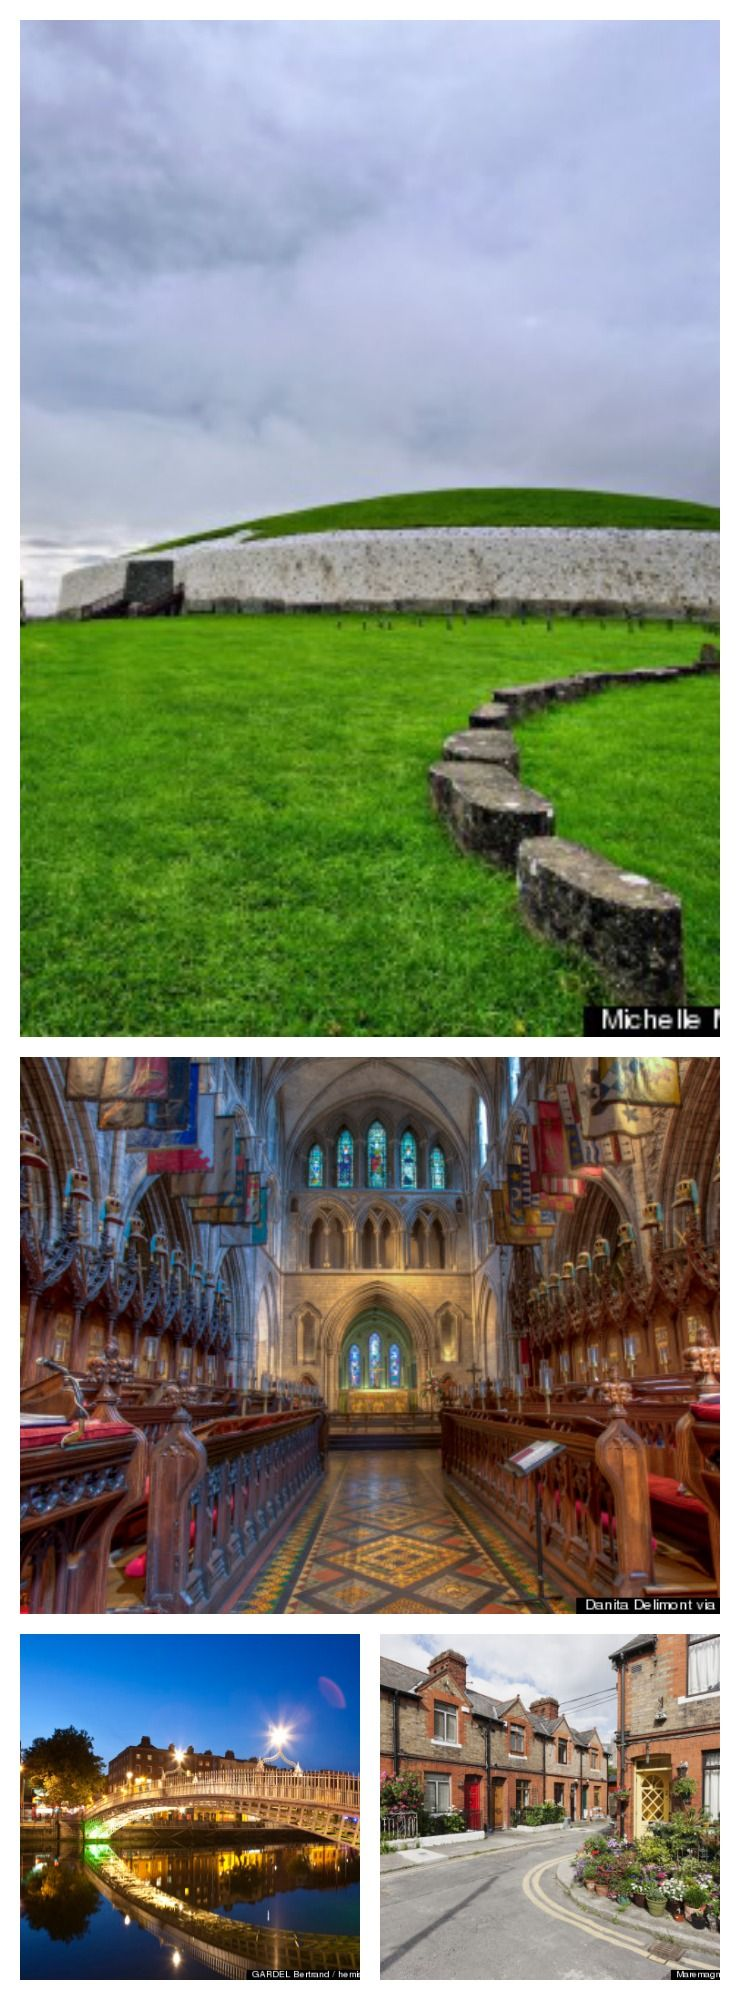 Sights to see in Dublin, #Ireland, beyond the Guinness factory I WILL GO BACK SOMEDAY I HOPE